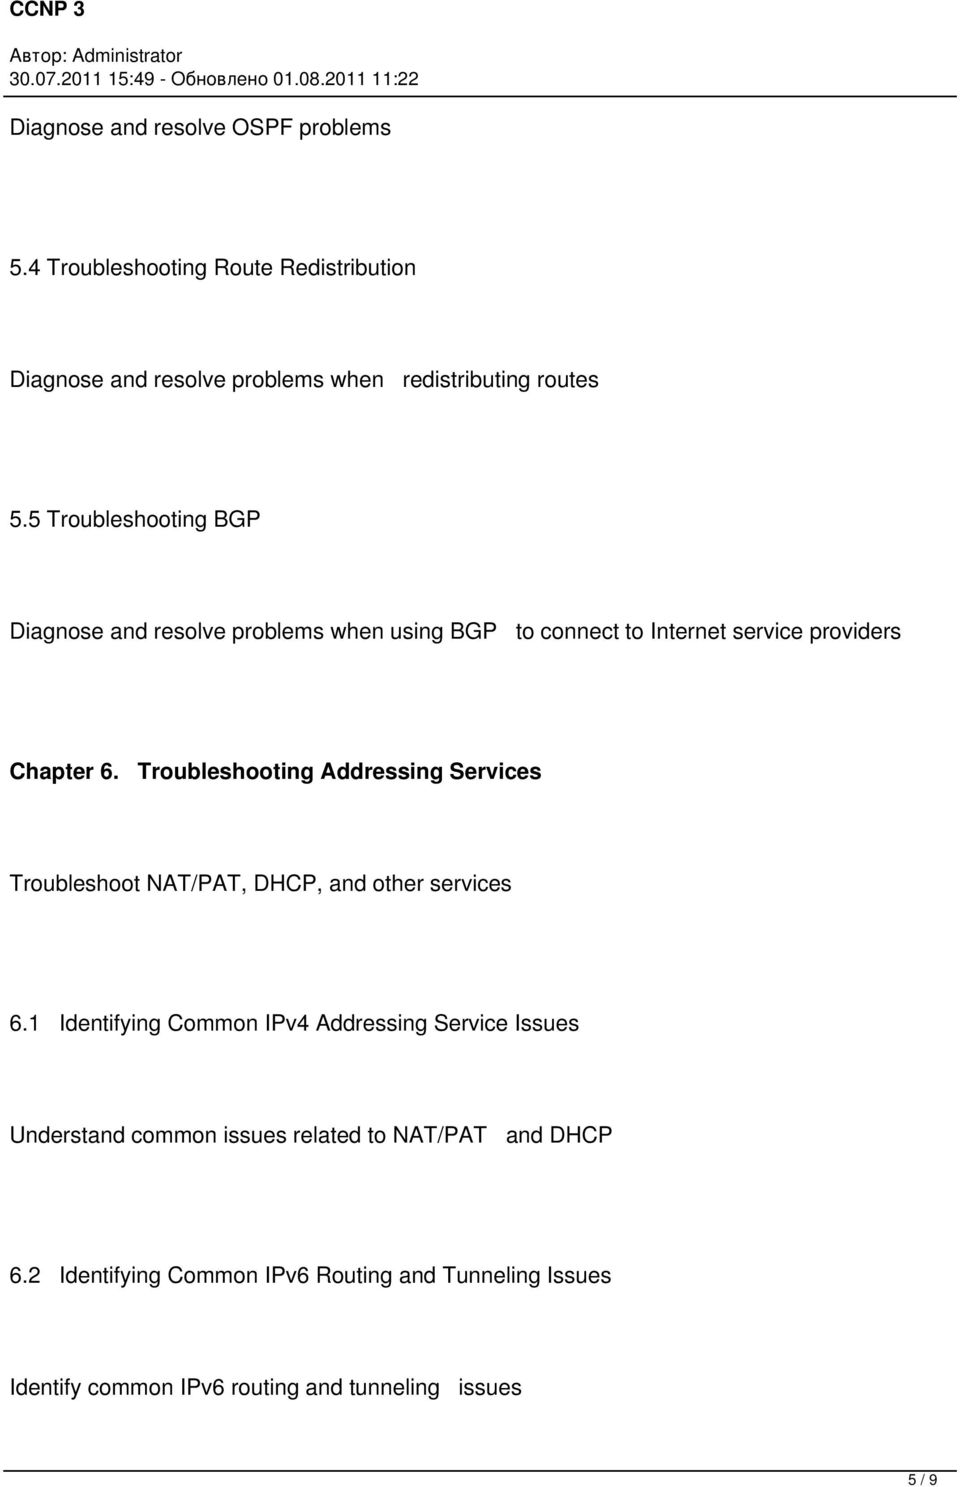 Troubleshooting Addressing Services Troubleshoot NAT/PAT, DHCP, and other services 6.